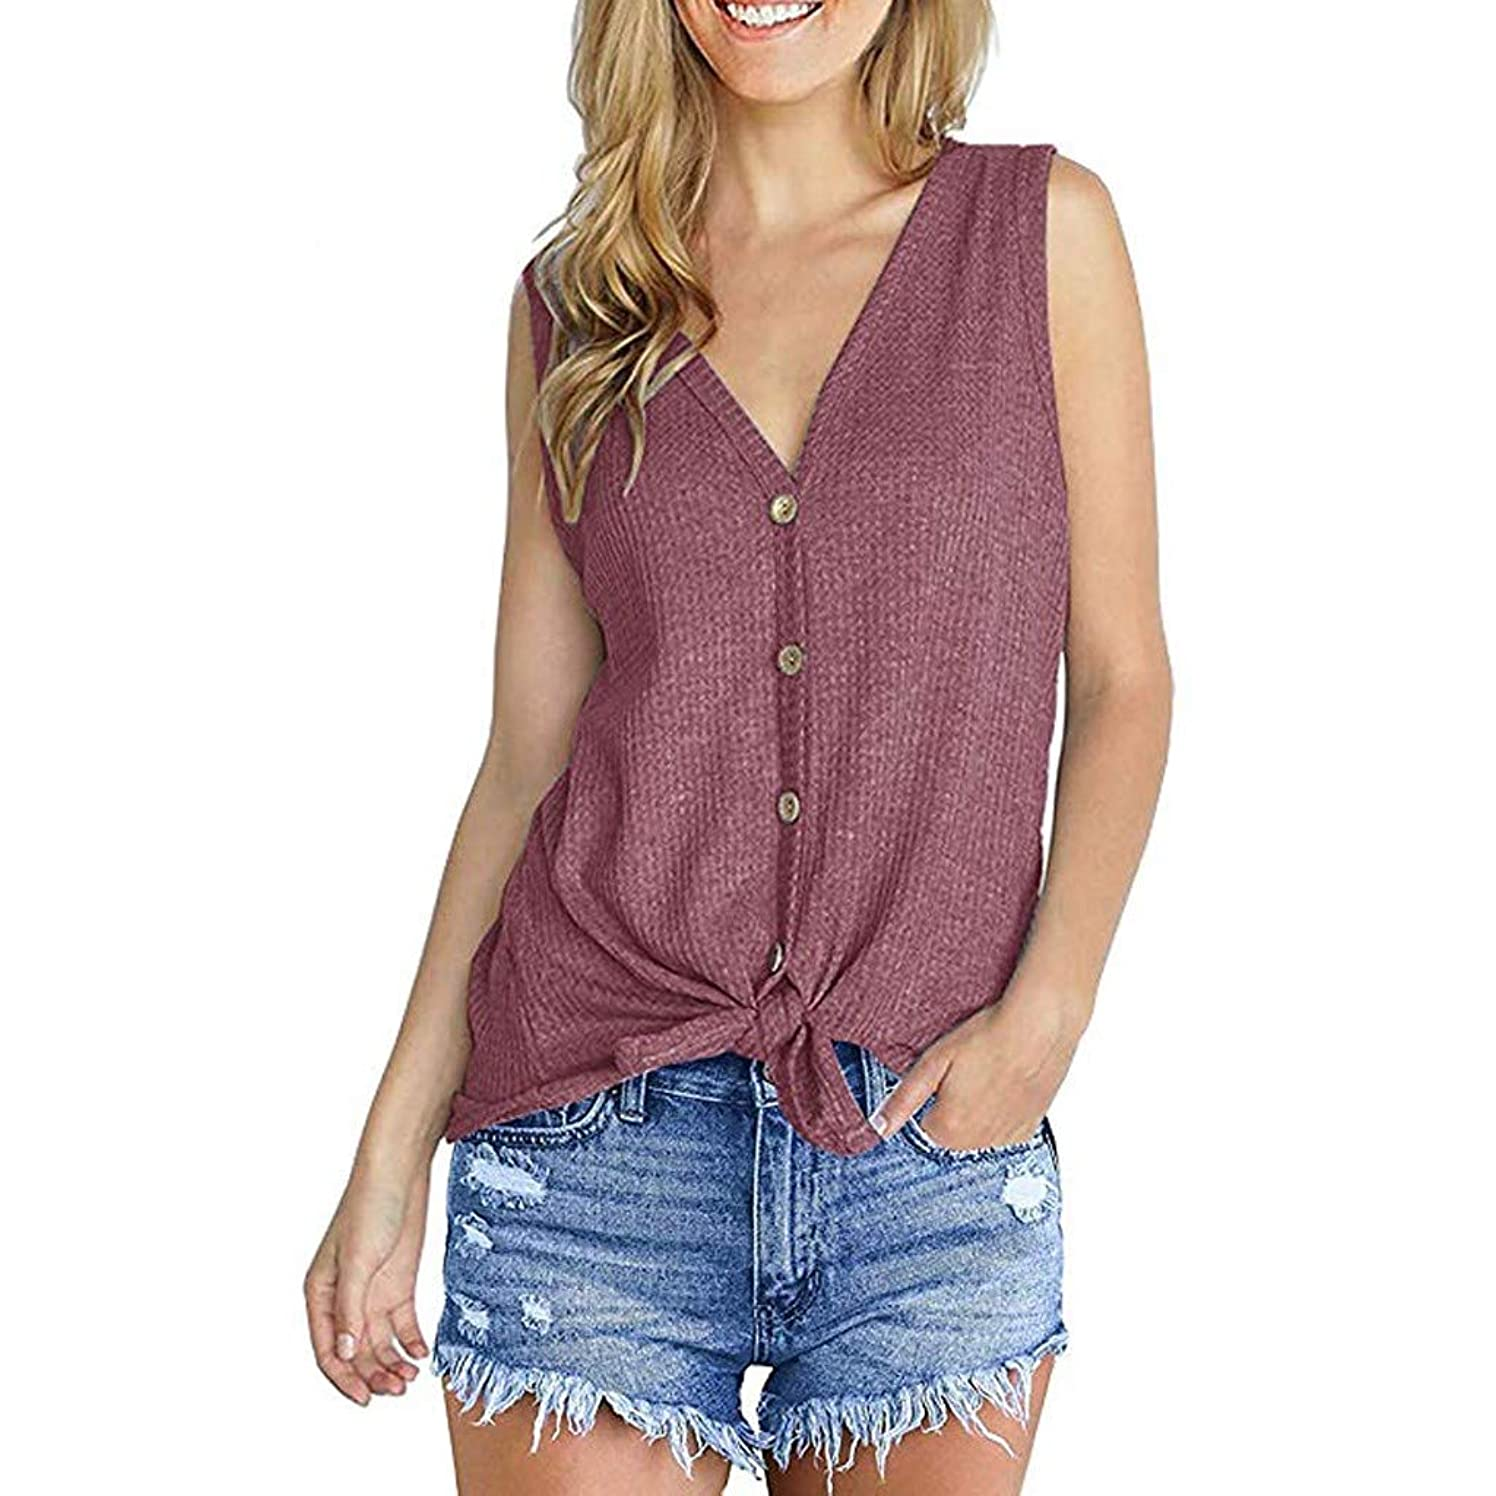 Toponly Womens Casual V Neck Waffle Knit Tank Tops Sleeveless Plain T Shirt Loose Buttons Tee Shirts Summer